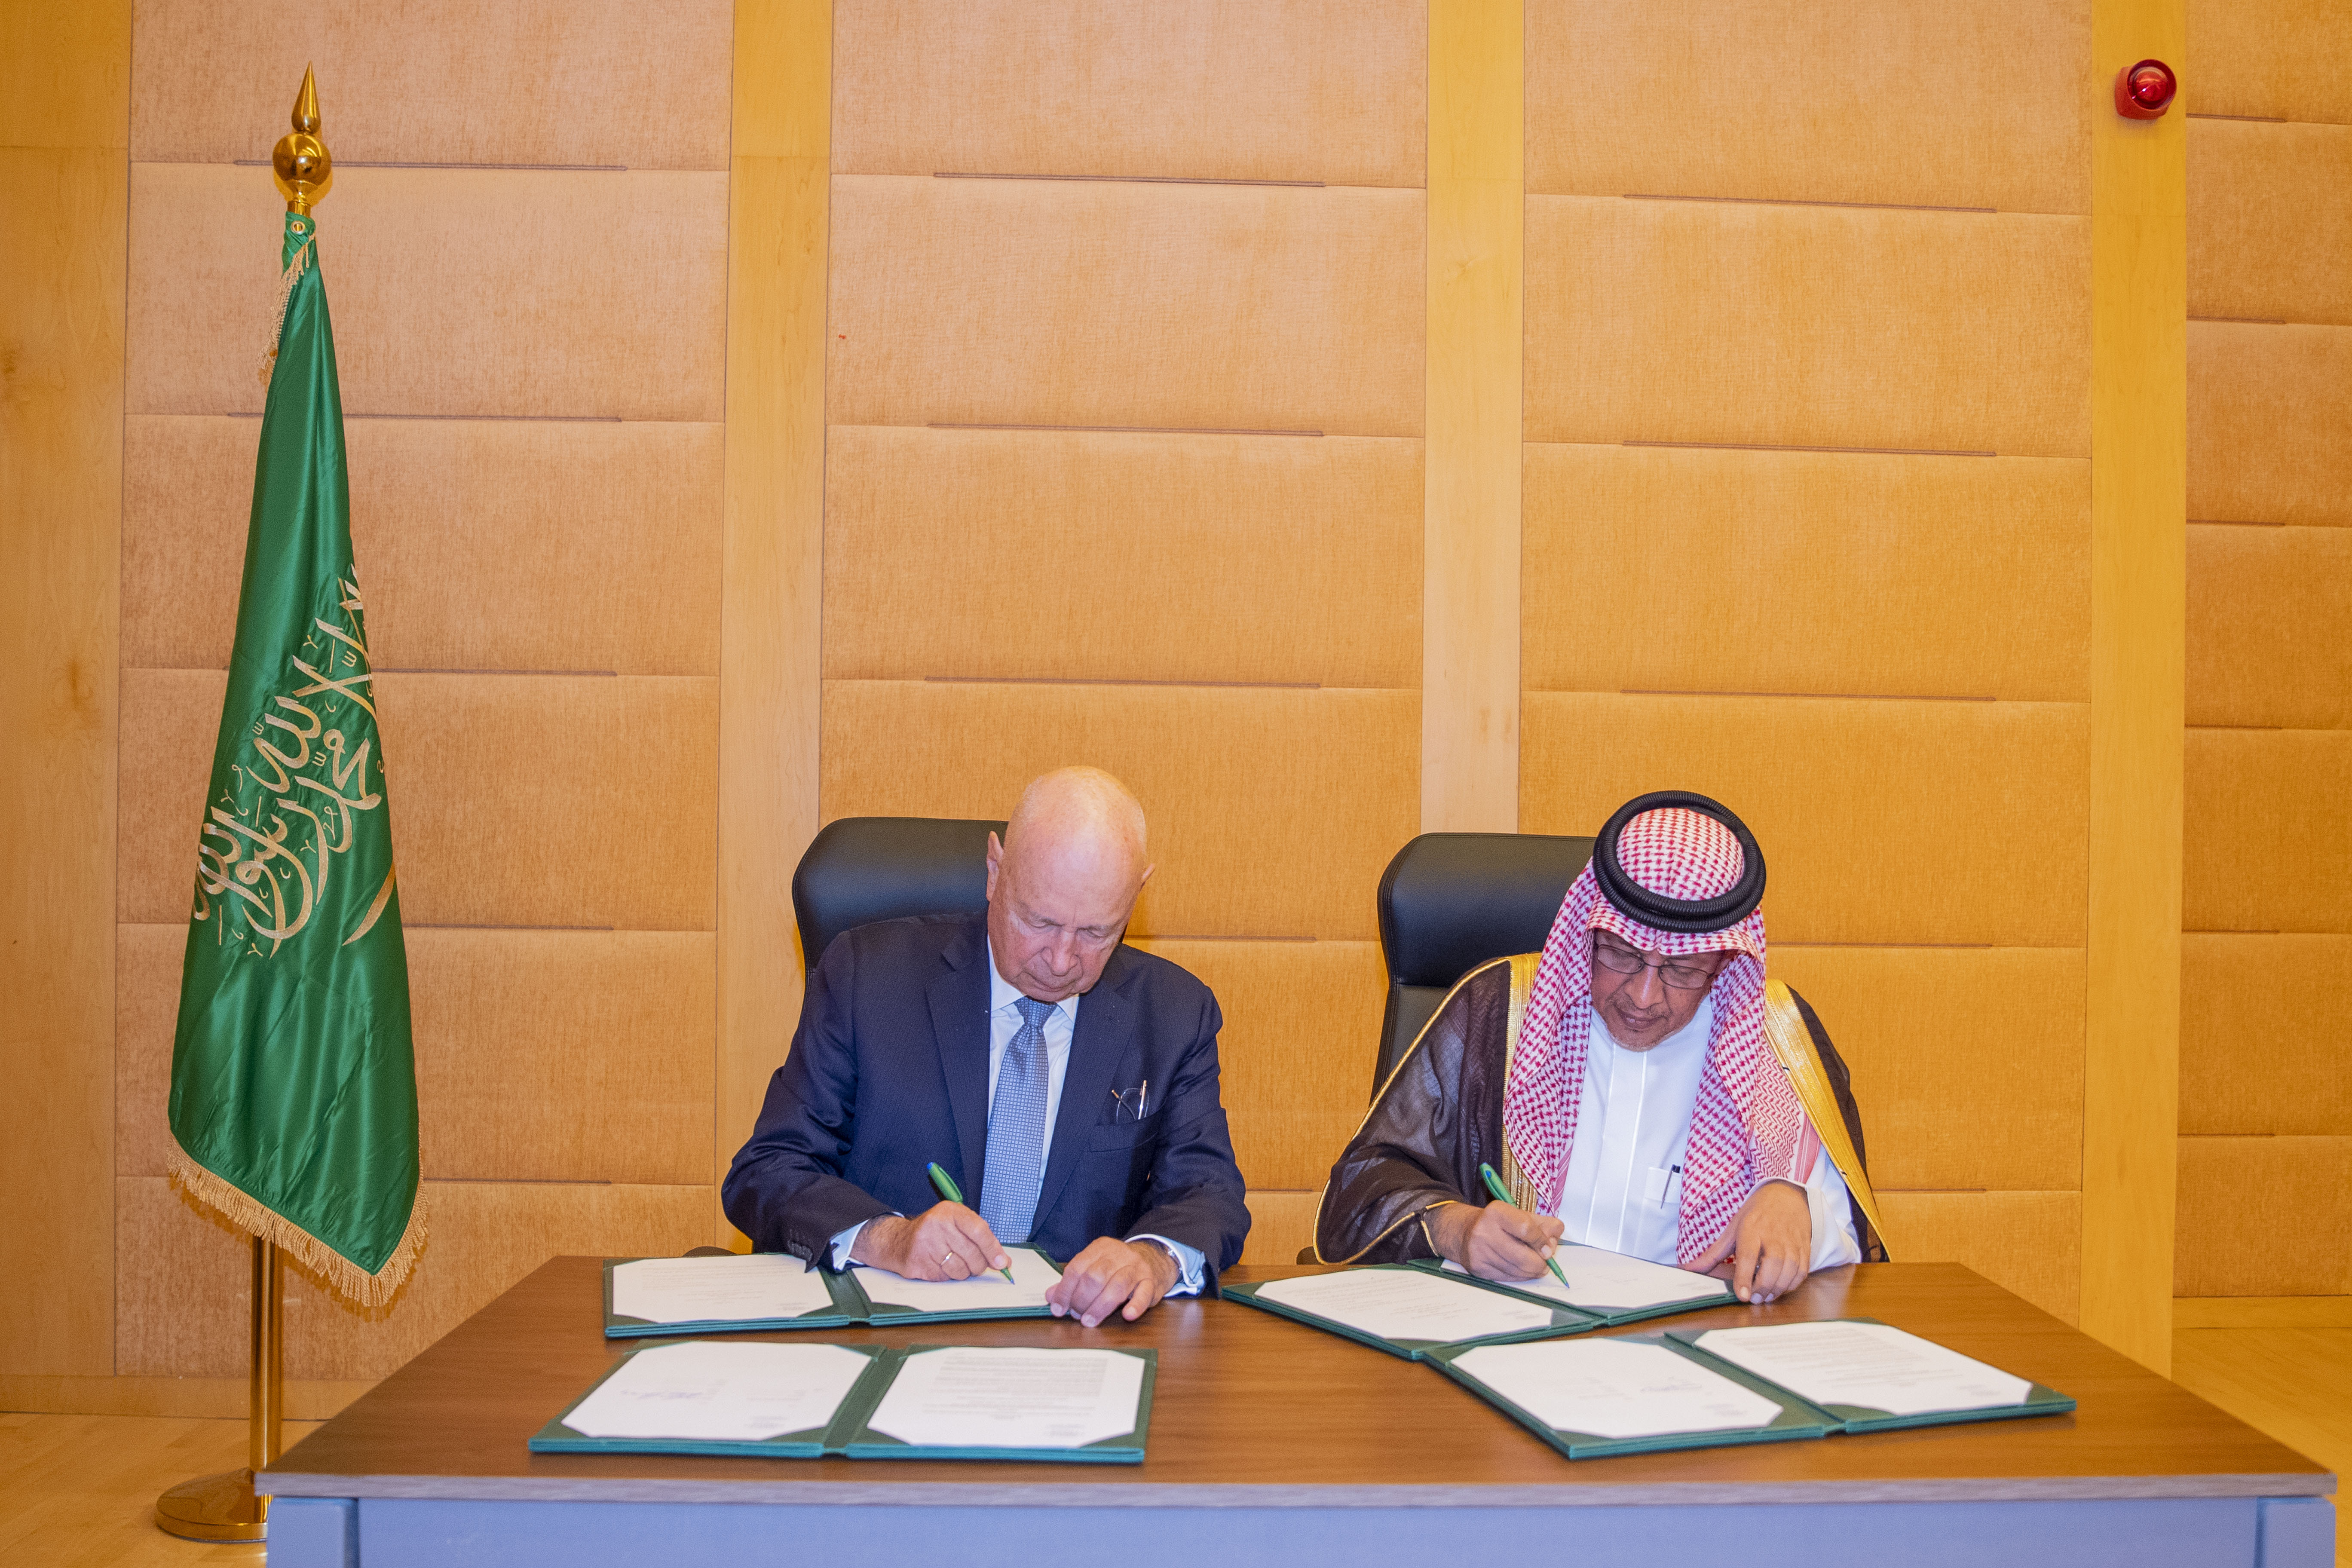 H.E. Mohammed Al-Tuwaijri, Minister of Economy and Planning, and Professor Klaus Schwab, Founder and Executive Chairman of WEF sign agreement in Riyadh Nov 6, 2019